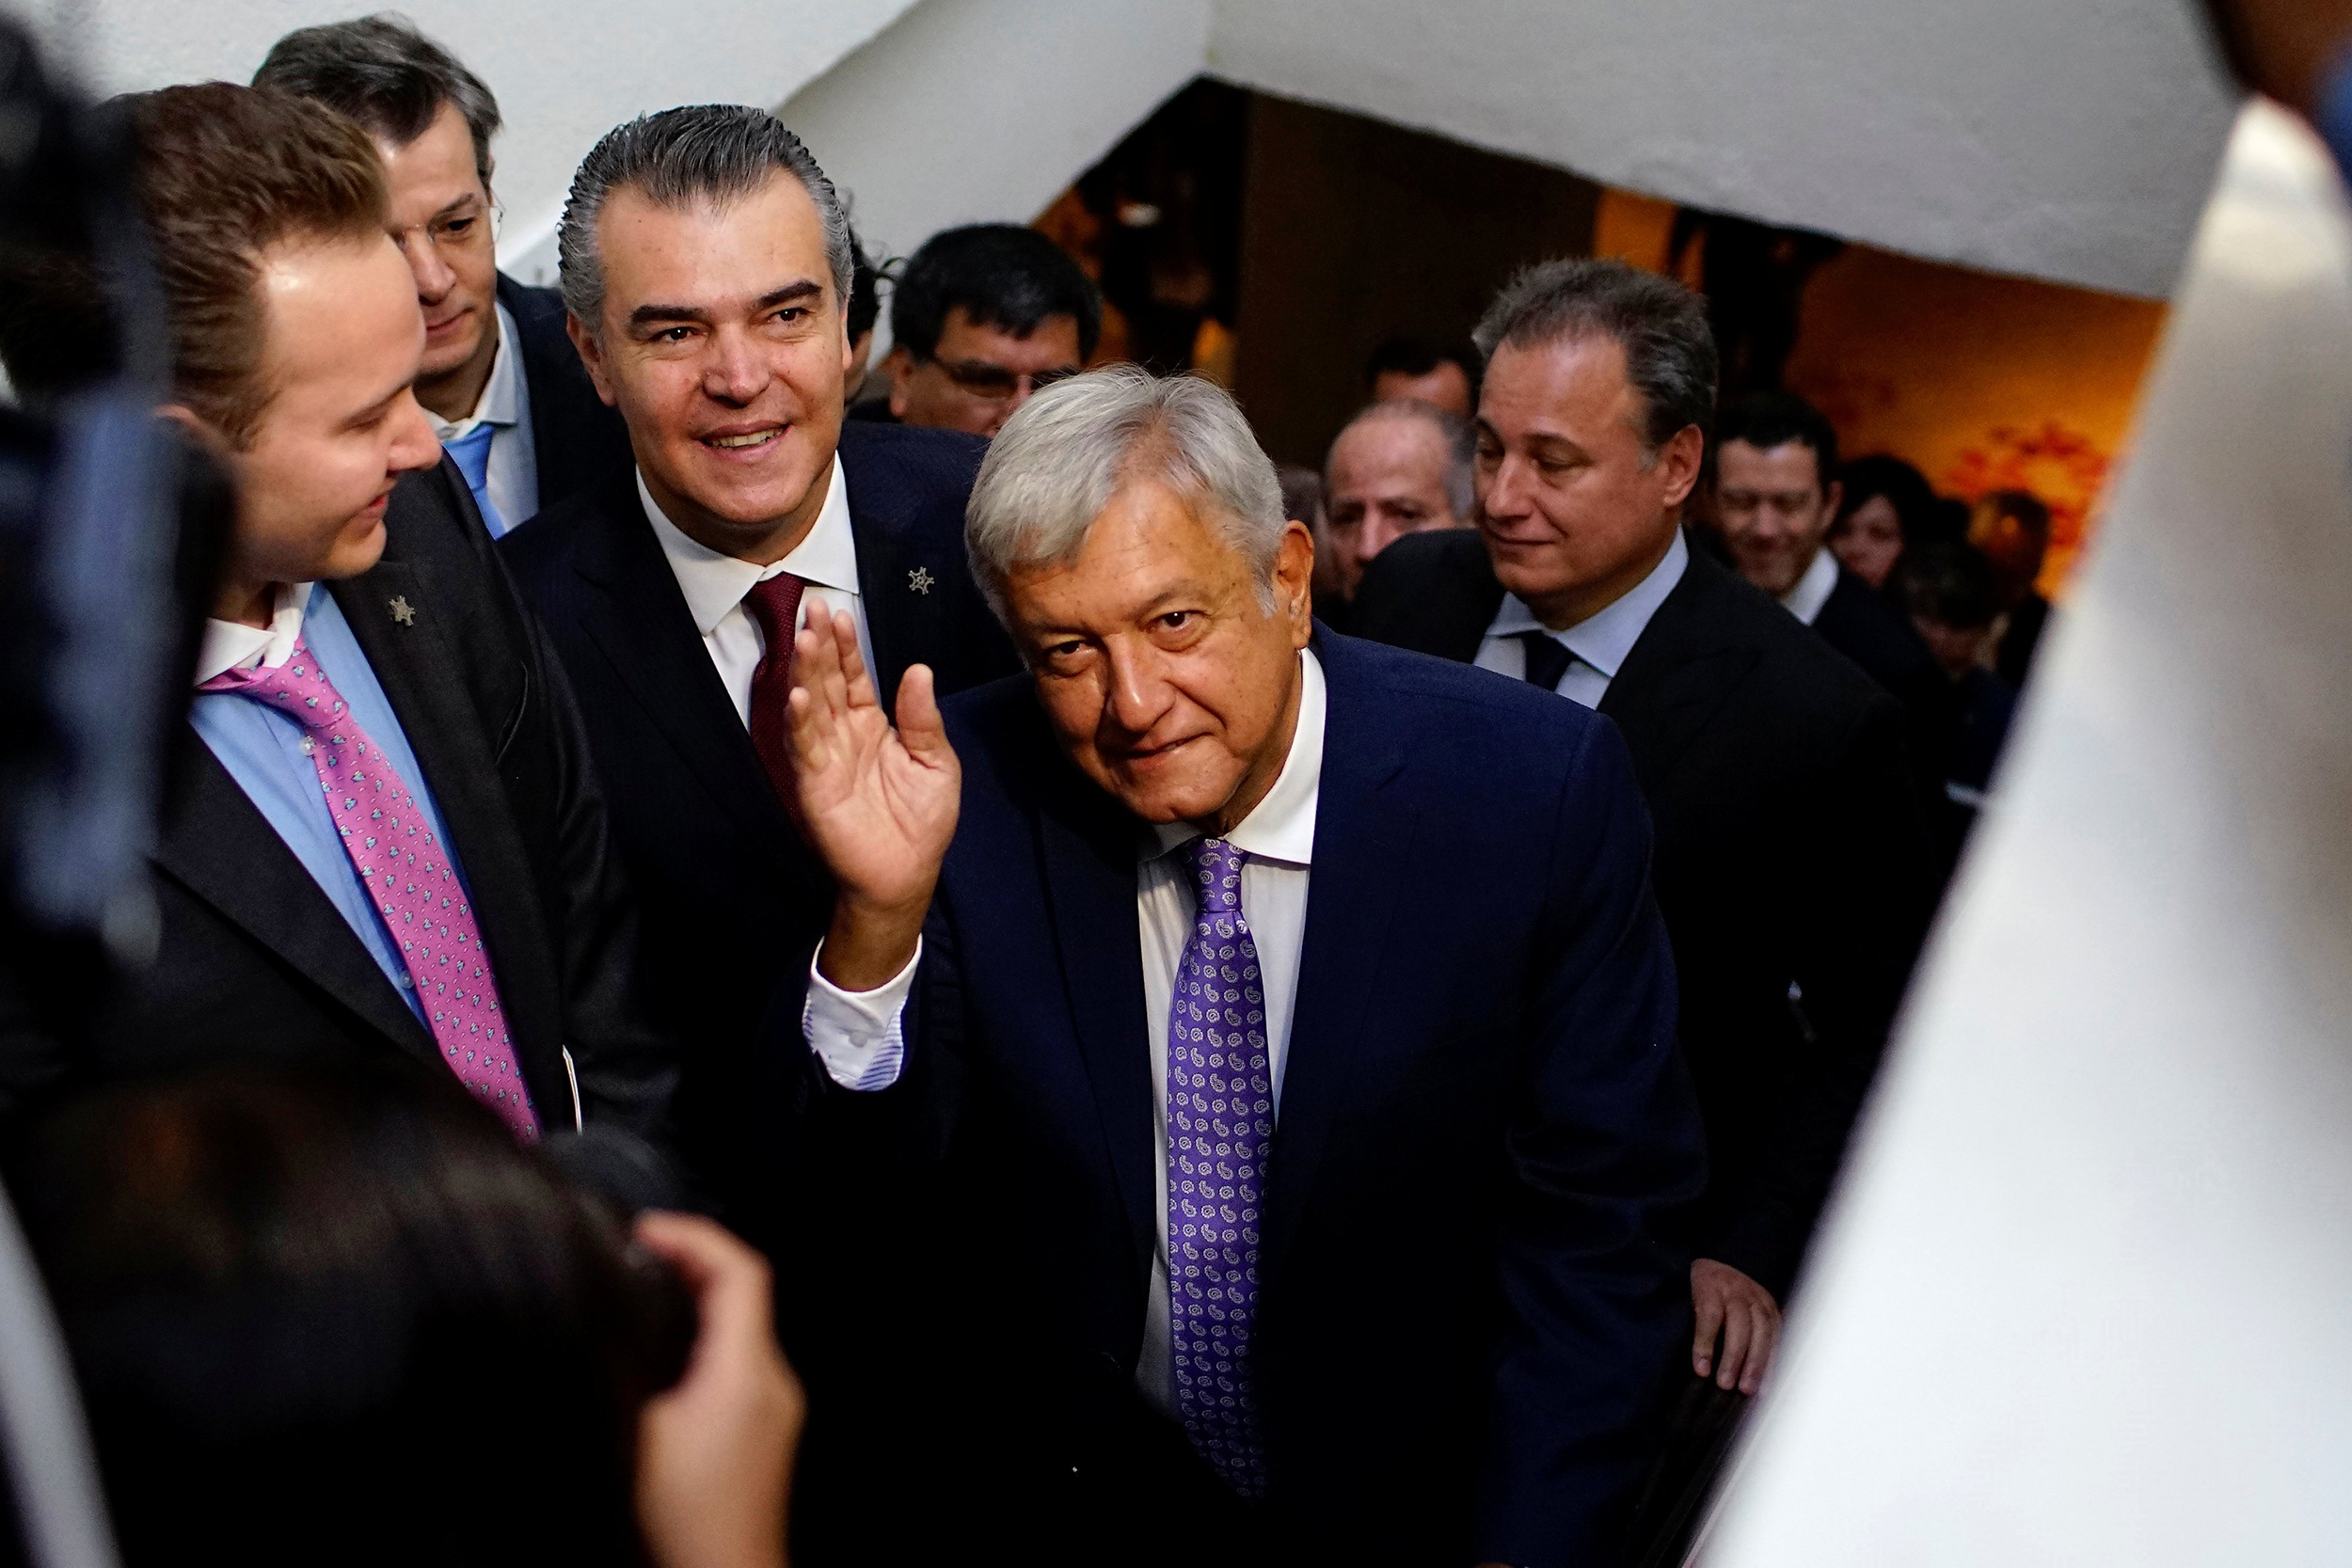 Can Mexico's new president change the course of strained U.S. relations?